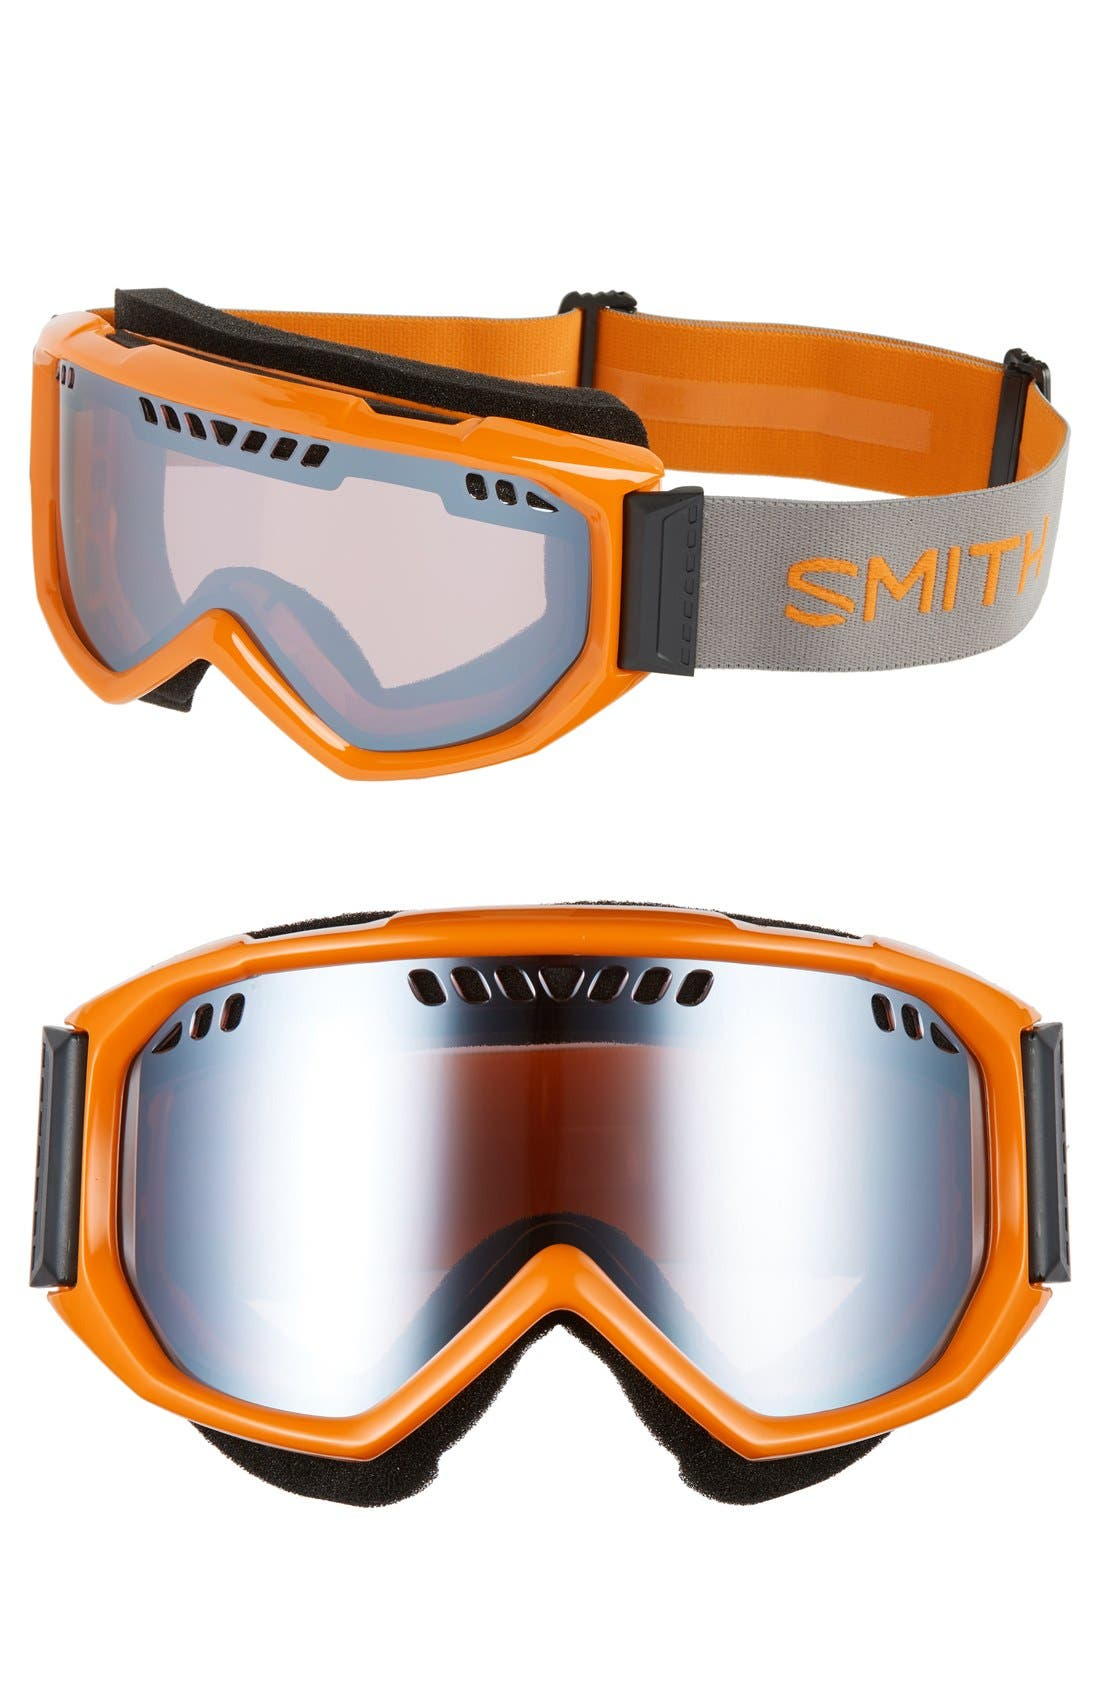 Smith Scope 175mm Snow Goggles